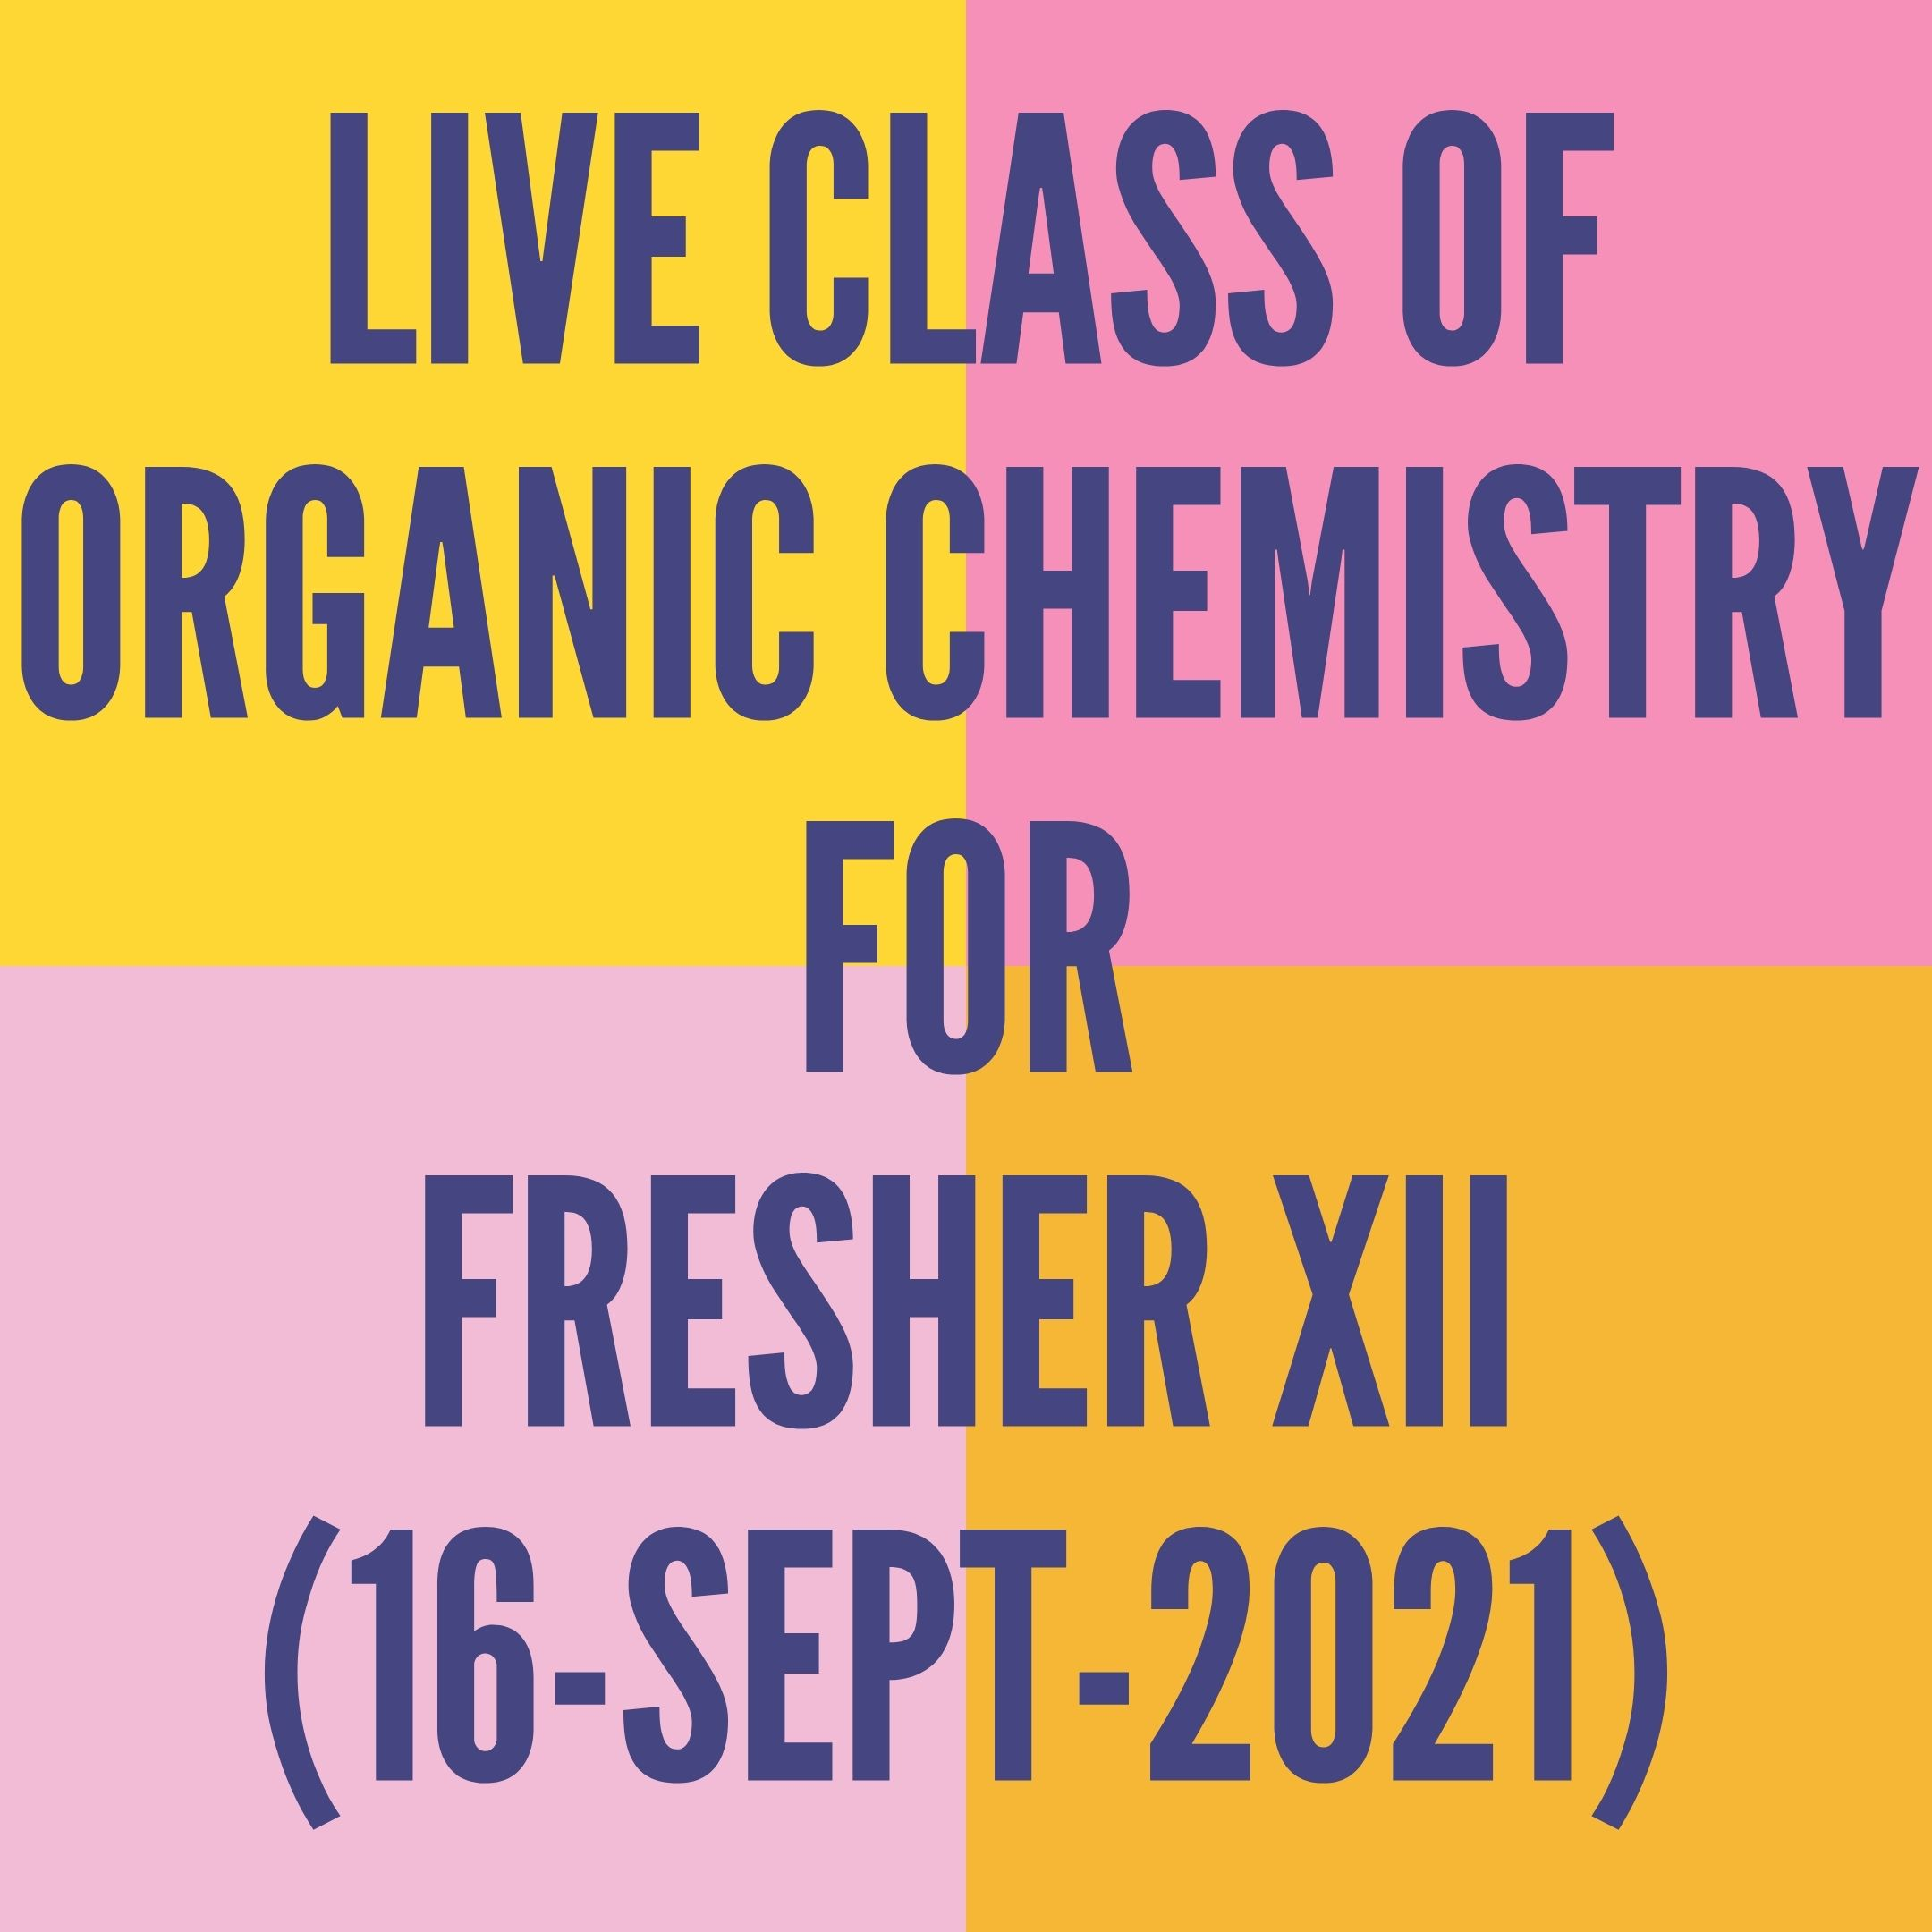 LIVE CLASS OF ORGANIC CHEMISTRY FOR FRESHER XII (16-SEPT-2021) ALDEHYDE. KETONE & CARBOXYLIC ACID